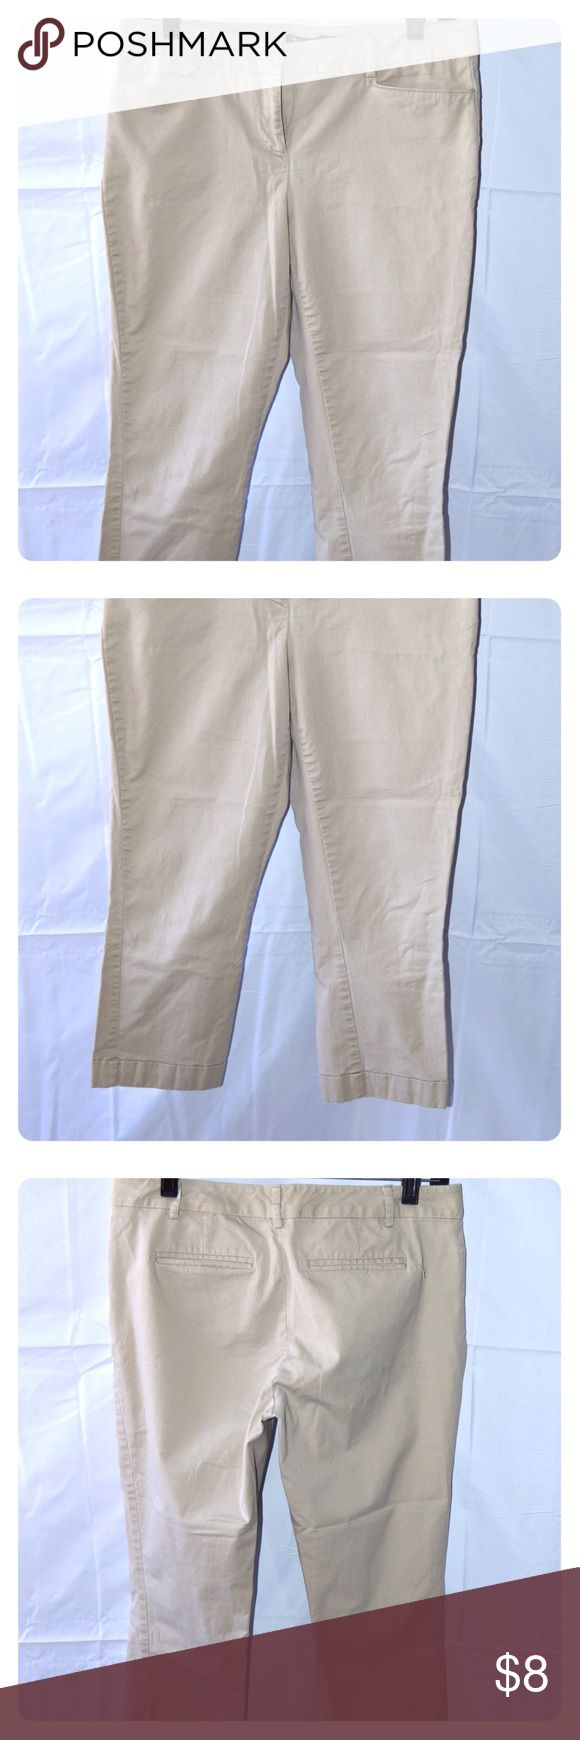 New York & Company Khaki Capri's New York & Company khaki capris. Size 6. 98% Cotton 2% Spandex New York & Company Pants Capris